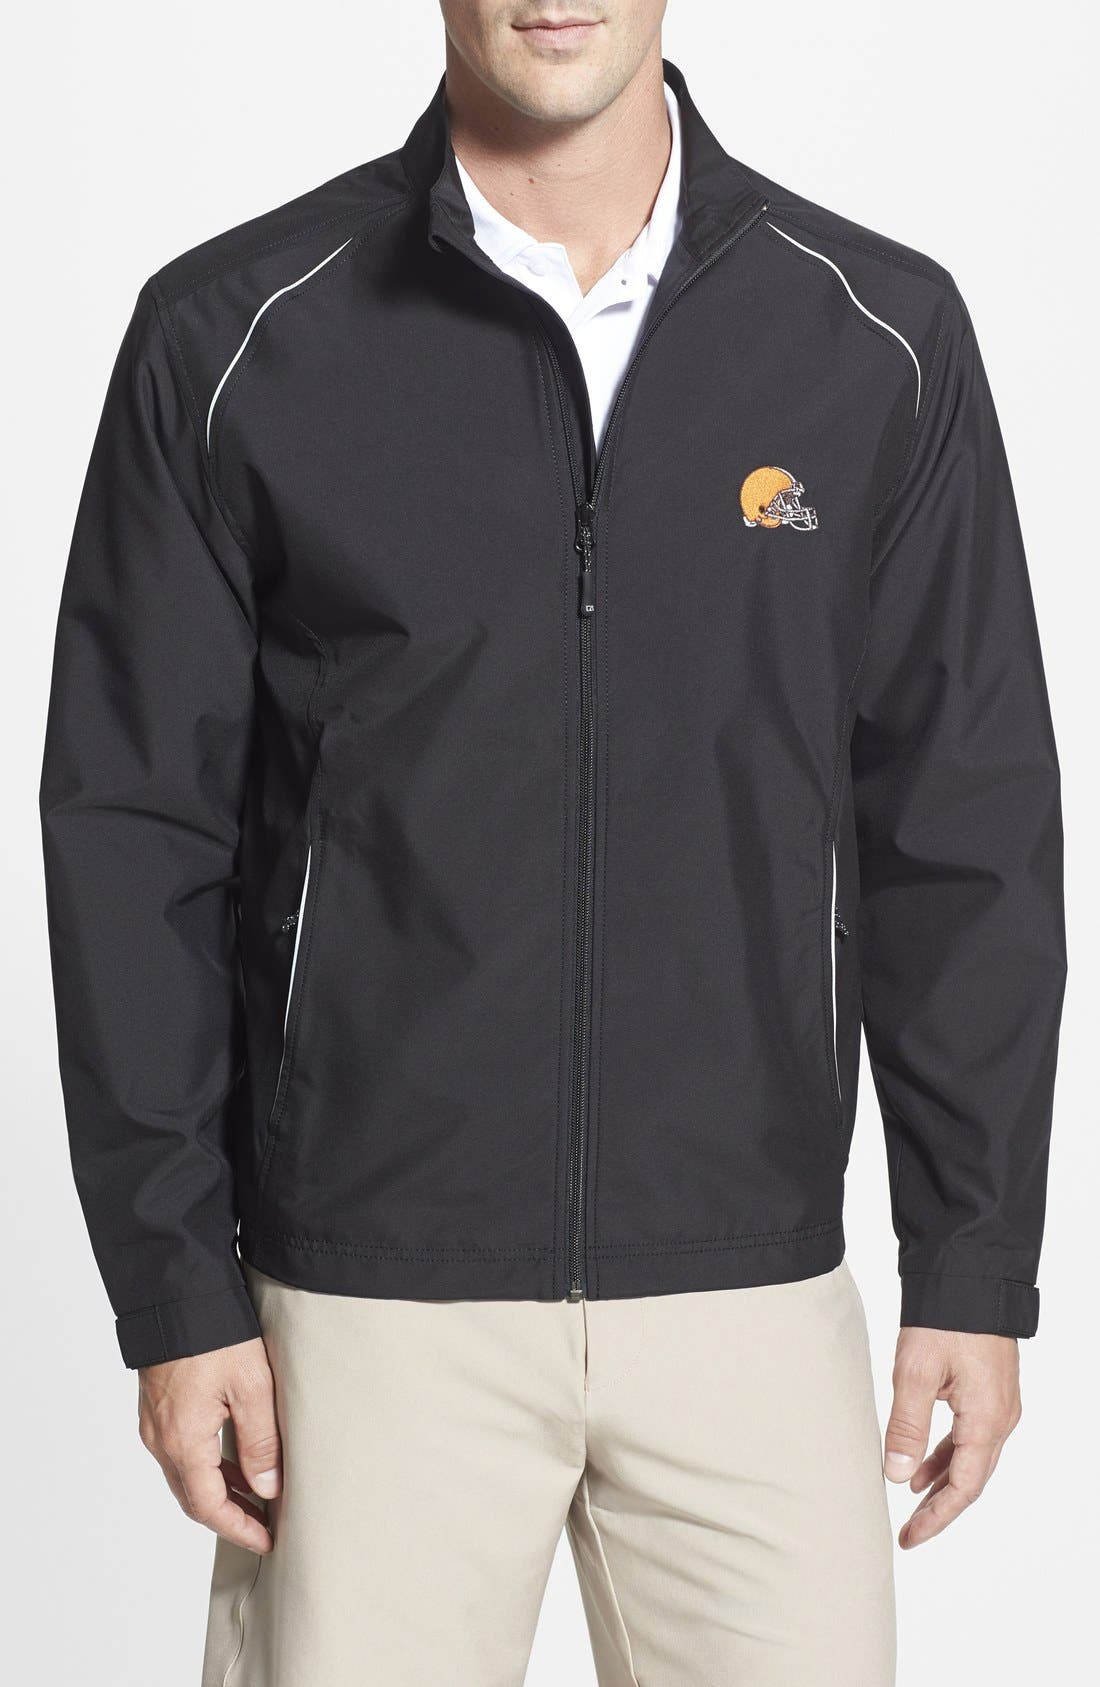 Main Image - Cutter & Buck Cleveland Browns - Beacon WeatherTec Wind & Water Resistant Jacket